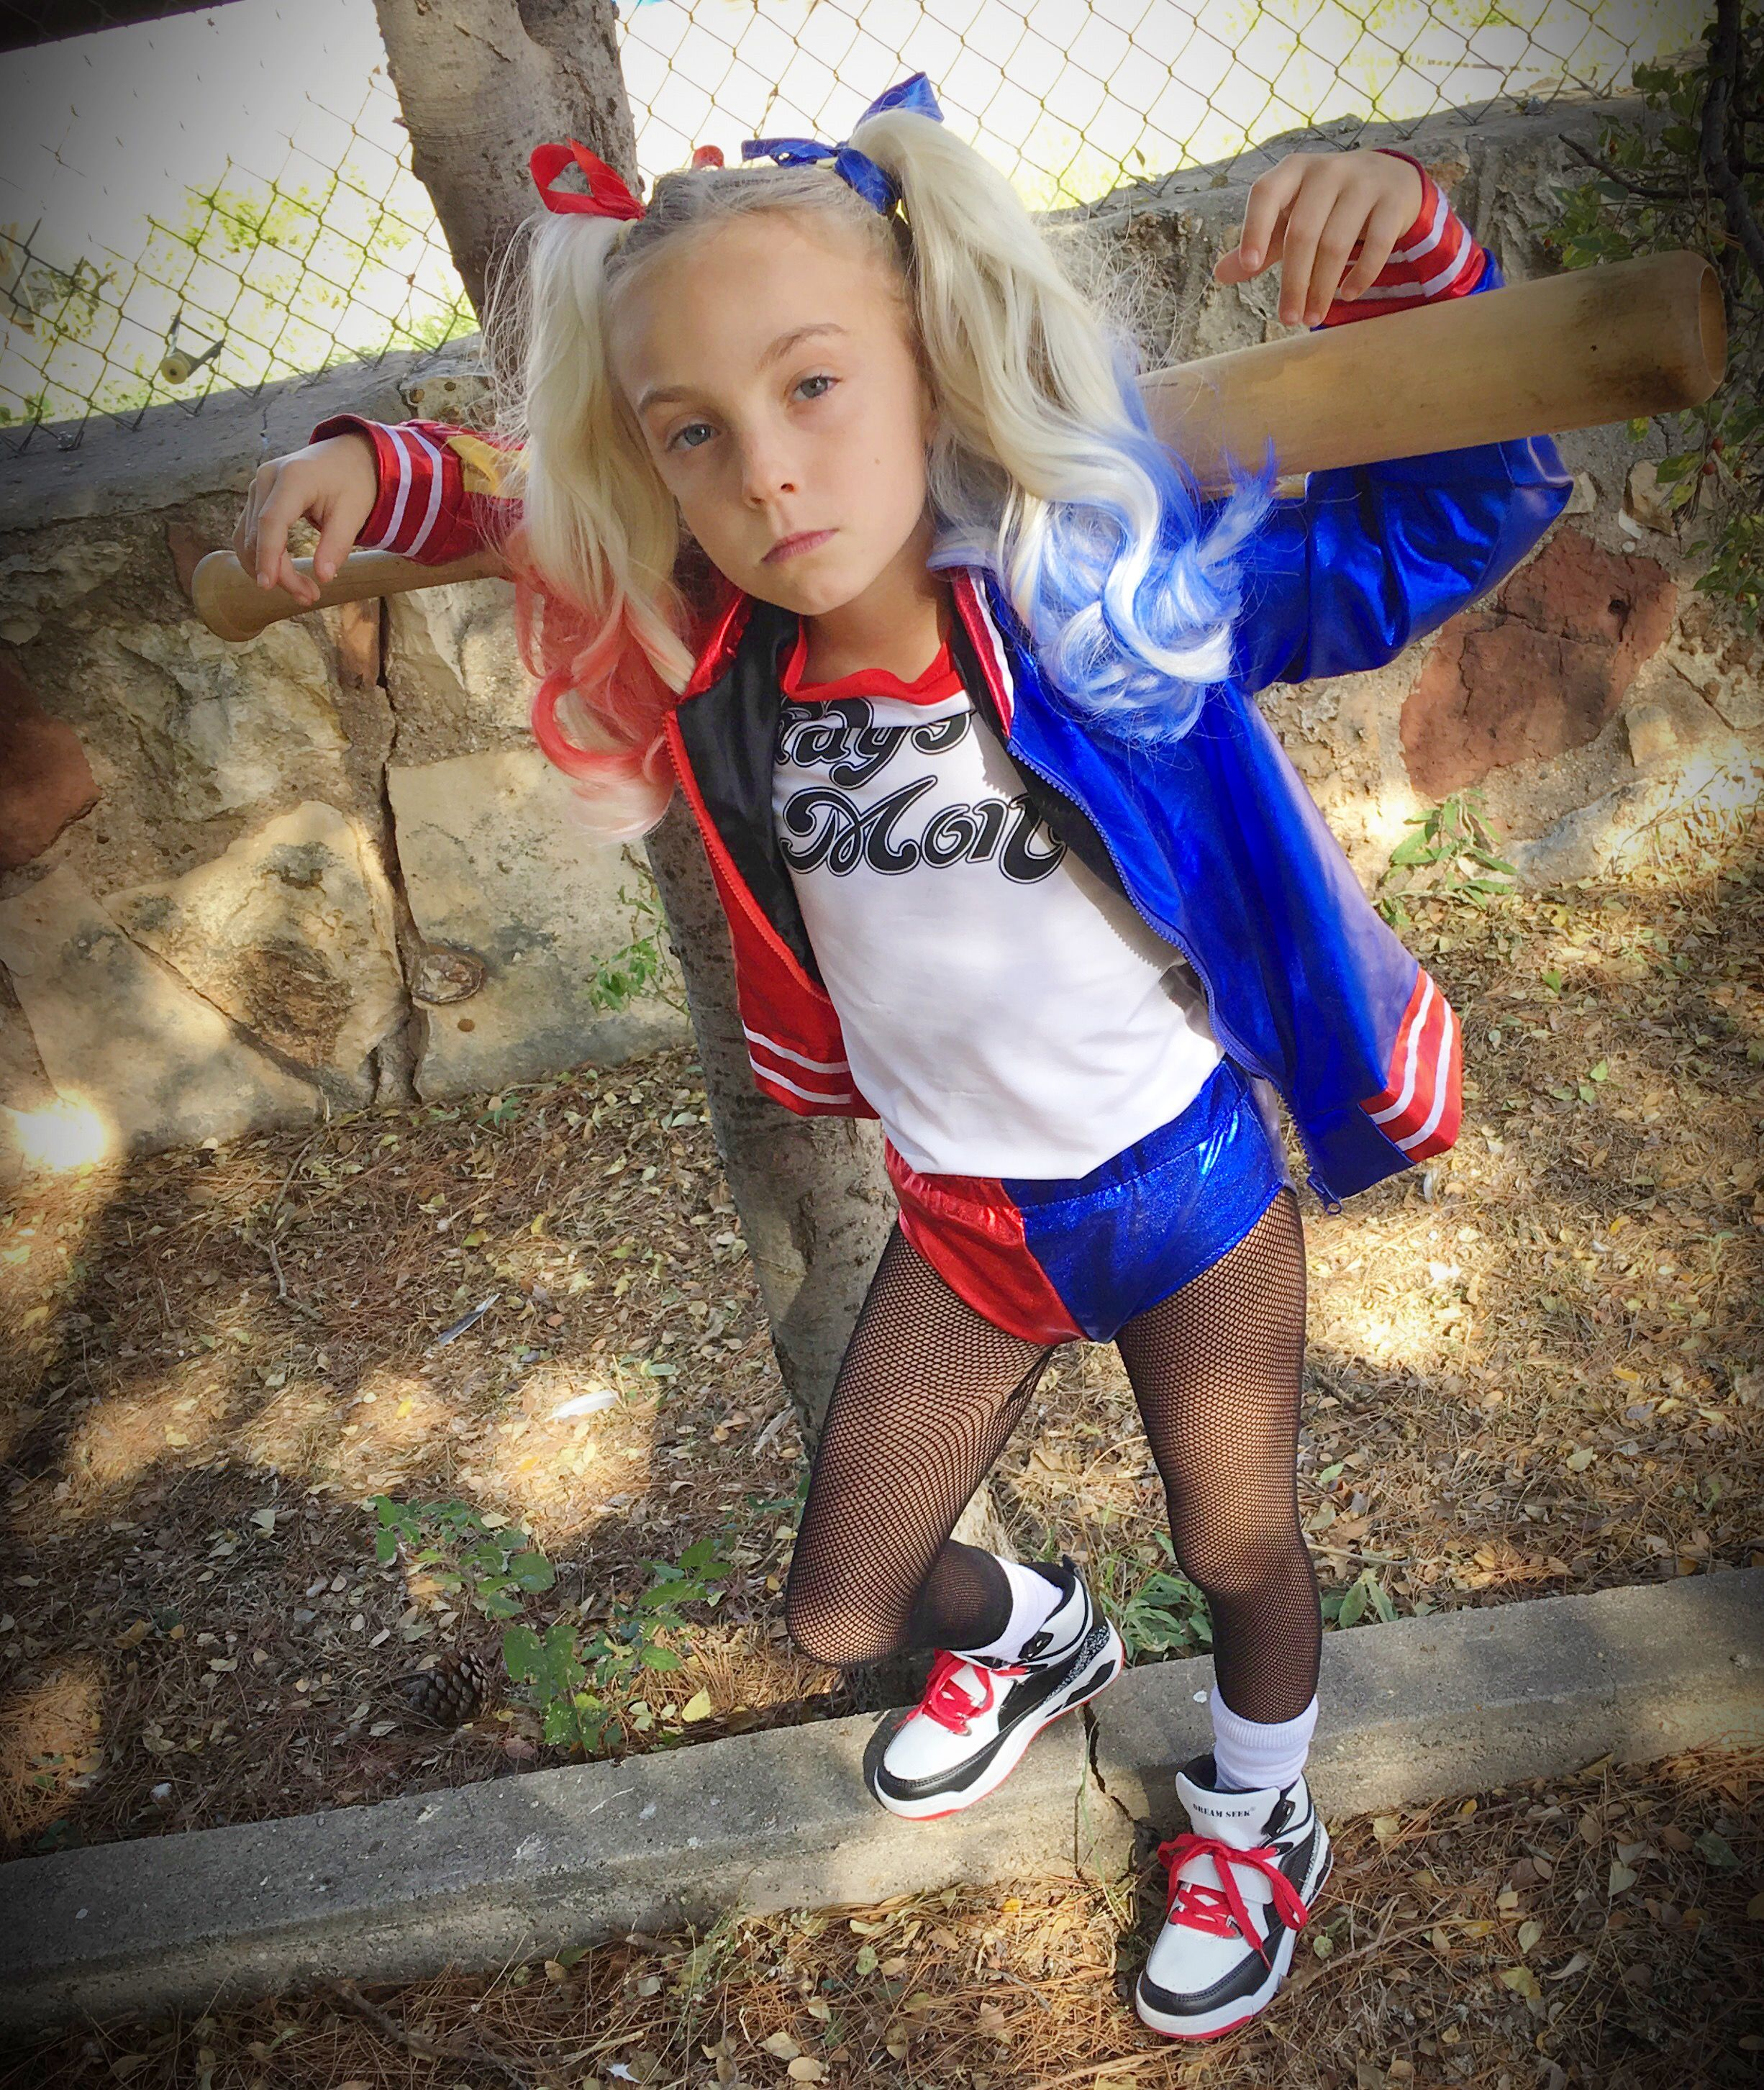 Top 35 Diy Harley Quinn Costume for Kids - Home, Family, Style and Art Ideas